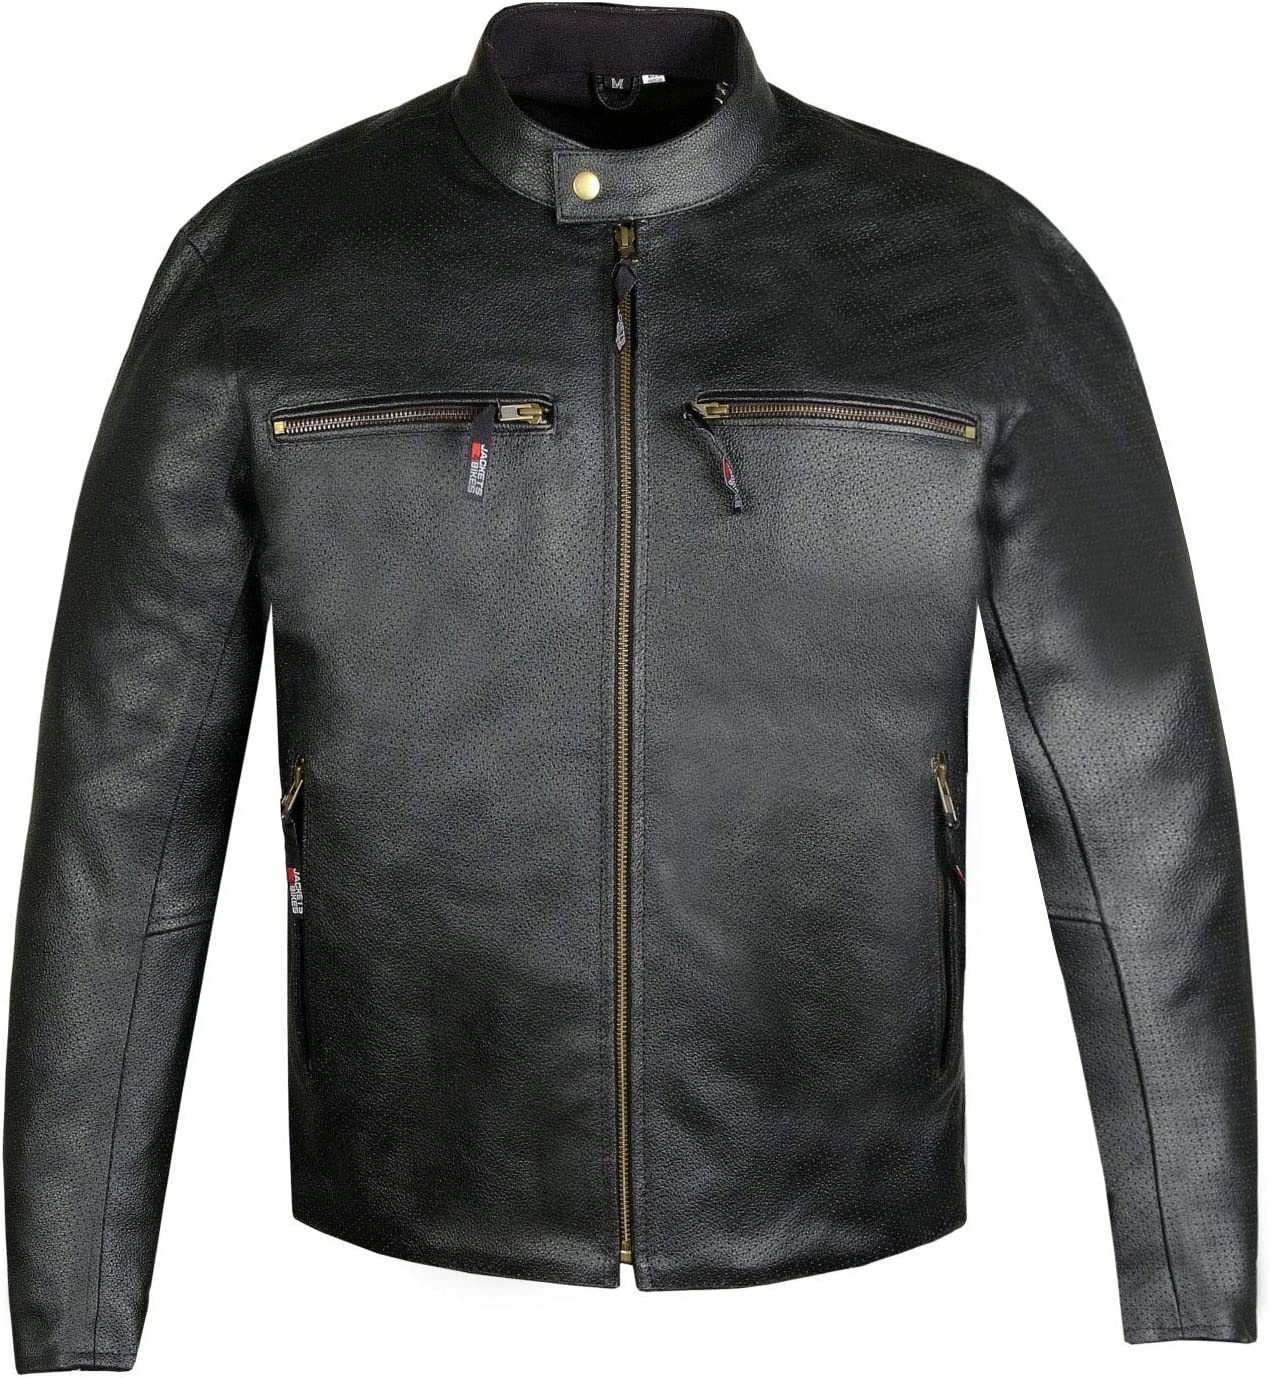 Max 87% OFF Bombing free shipping Men's Infinity Airflow Perforated Leather Motorcycle CE Bi Armor